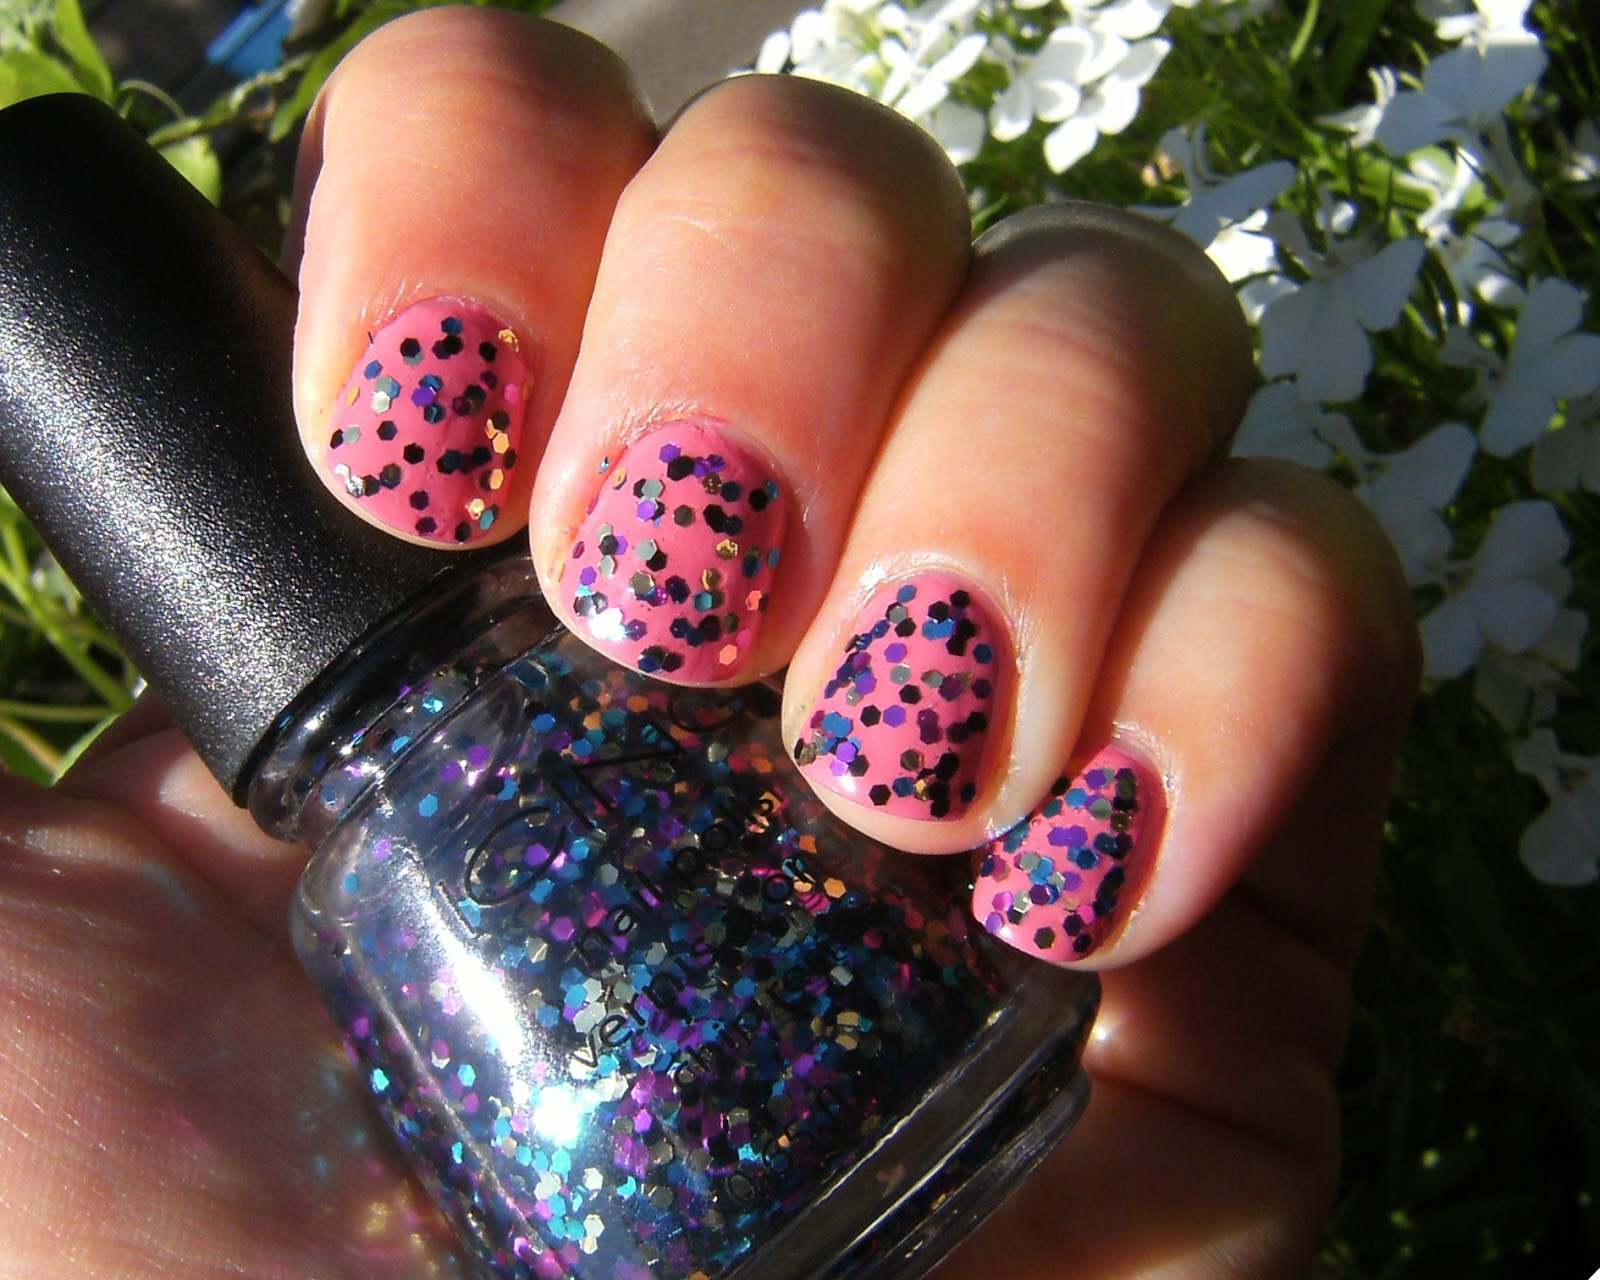 Deez Nailz Icing Love It And Wet N Wild Candy Licious Megalast Salon Nail Color Candylicious I Am Loving These Polishes From Probably Could Have Added Another Coat As Had A Few Sparse Areas But Was Nice Day Wanted